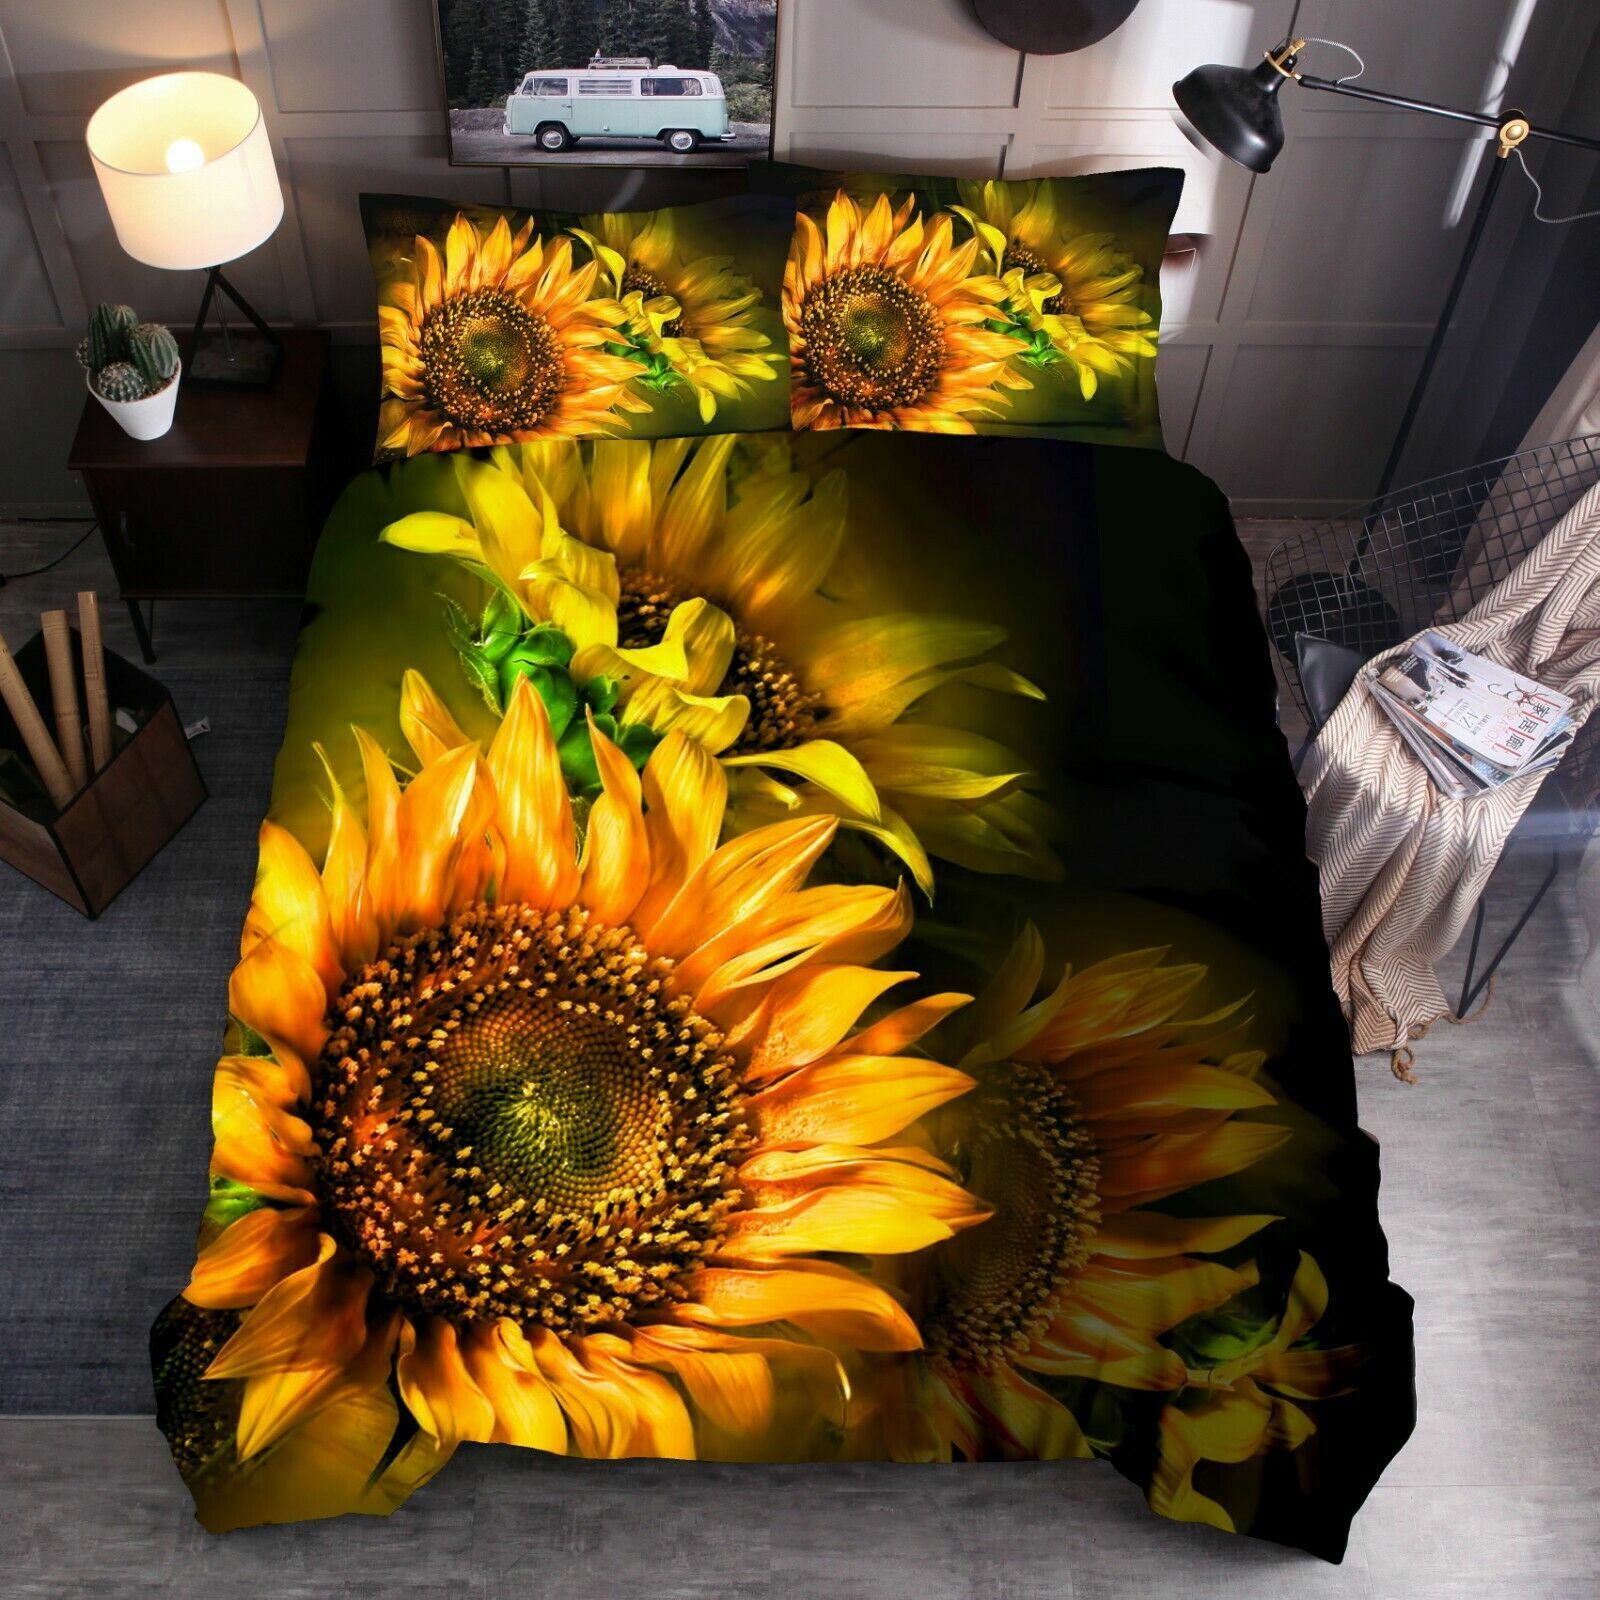 Comforter Cover for Childrens//Kids Twin Size Josid Sunflower and Butterfly Duvet Cover Set 2 Pillow Shams 1 Duvet Cover 3 Pieces Bedding Set with Zipper Closure